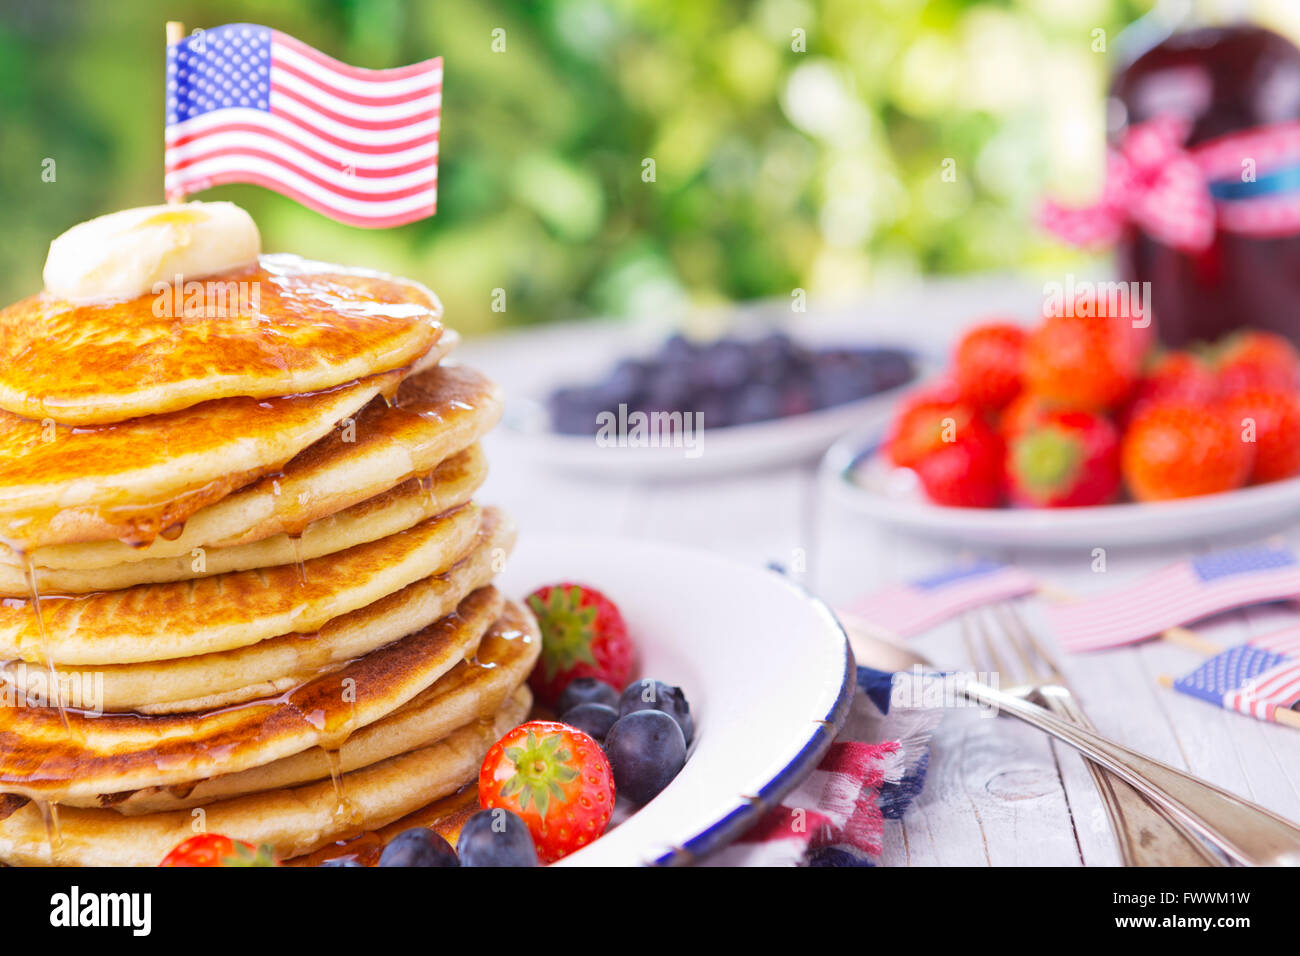 a-stack-of-homemade-pancakes-with-fresh-